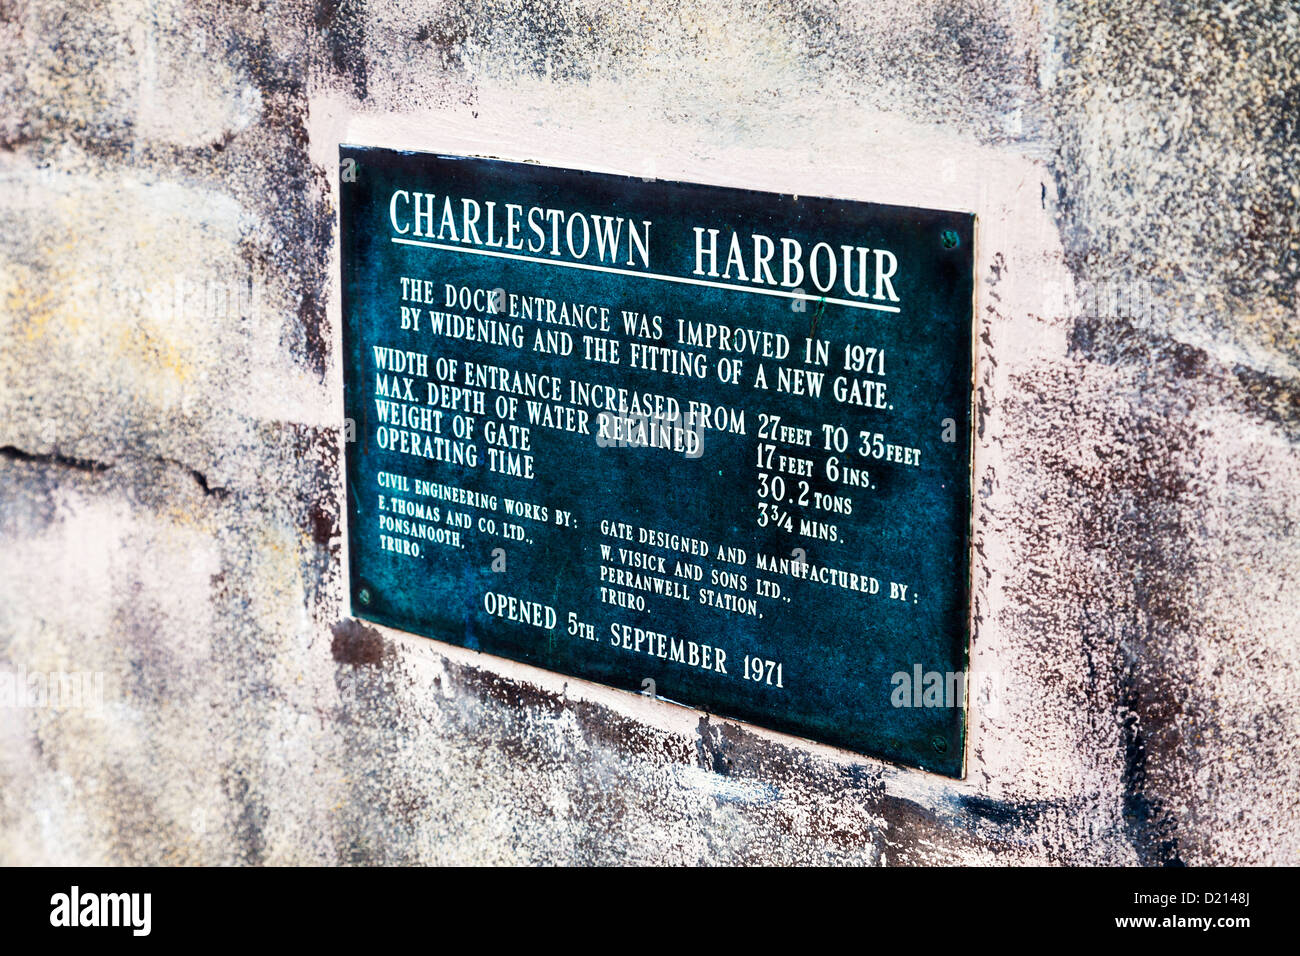 Plaque on wall at Charlestown, Cornwall small village with iconic boats in harbour - Stock Image